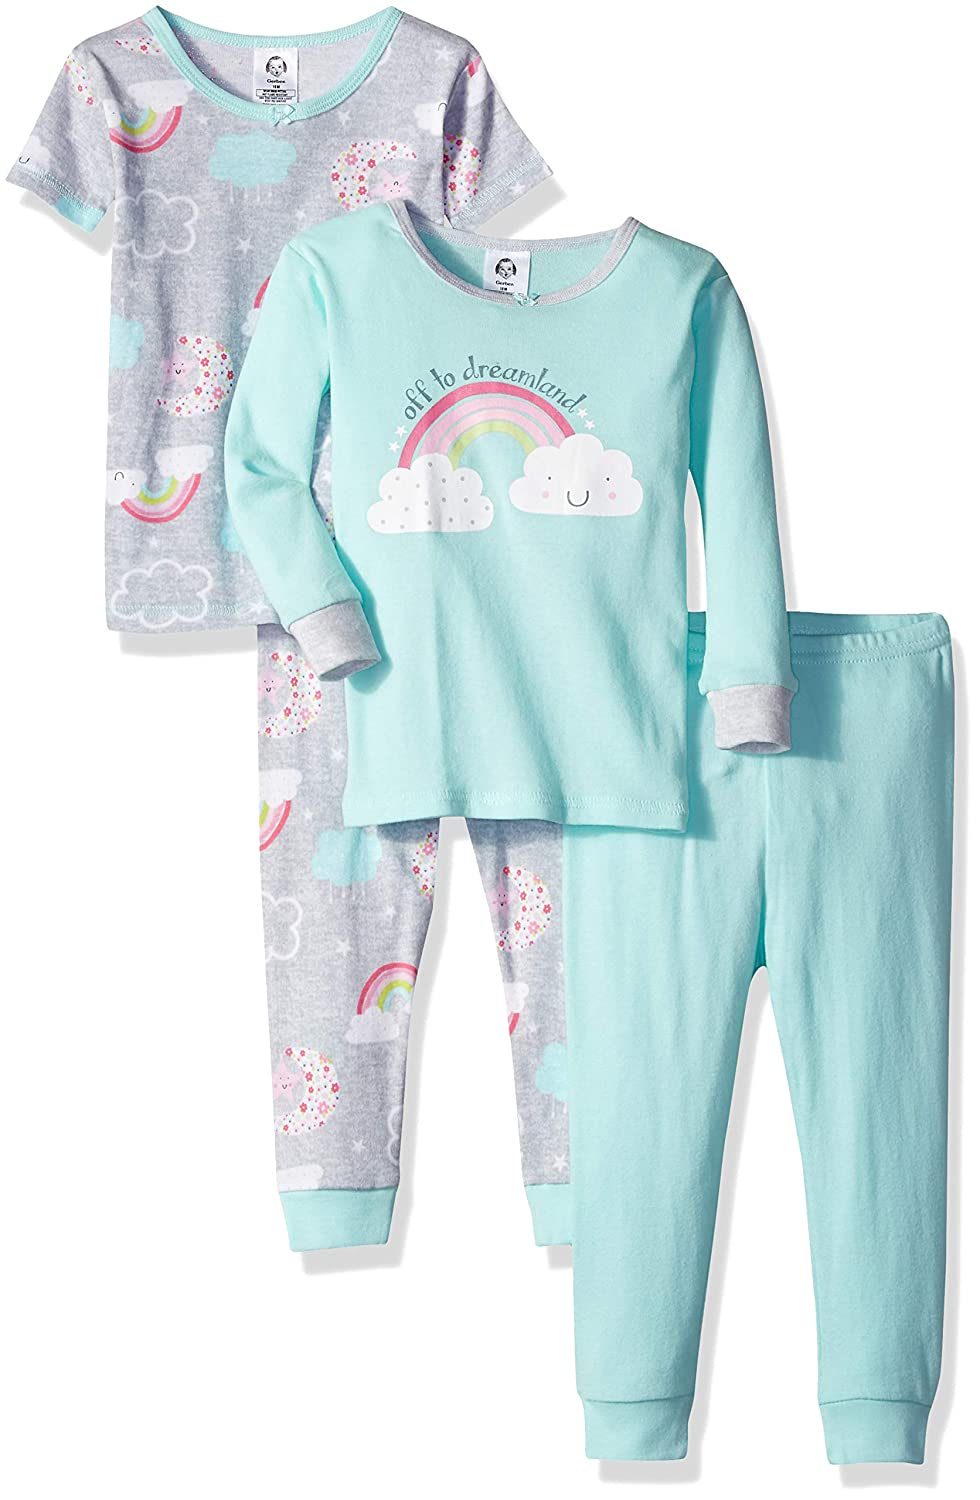 Gerber Baby Girls' 4-Piece Pajama Set Gerber Children' s Apparel